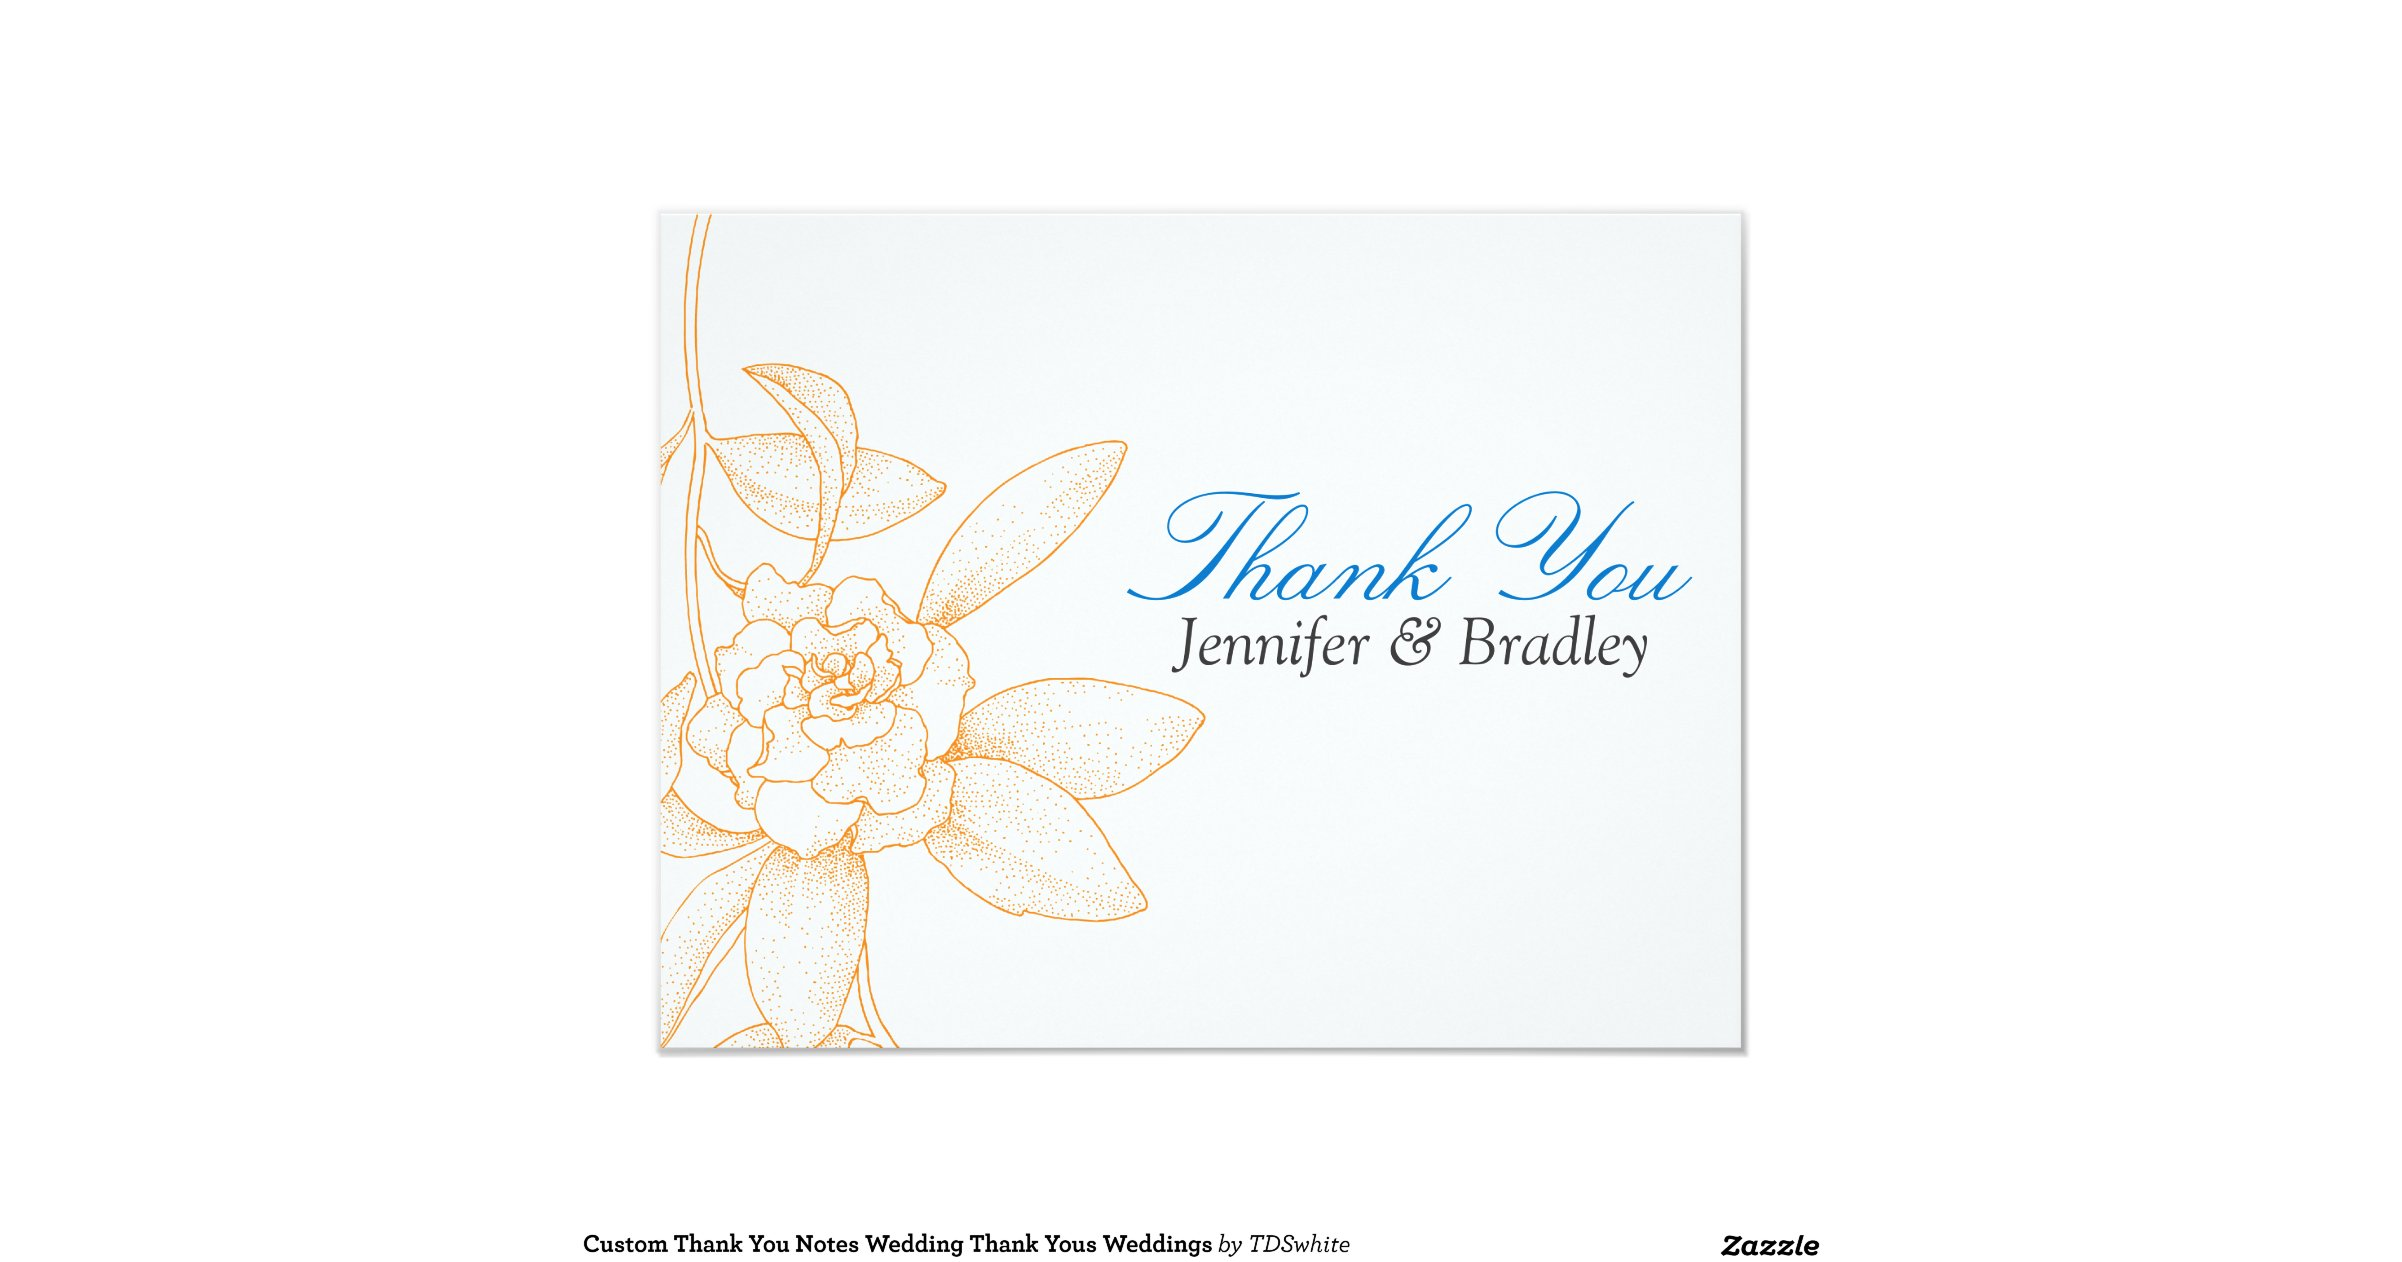 After Wedding Thank You Messages: Thank You Notes After The Wedding 4.25x5.5 Paper